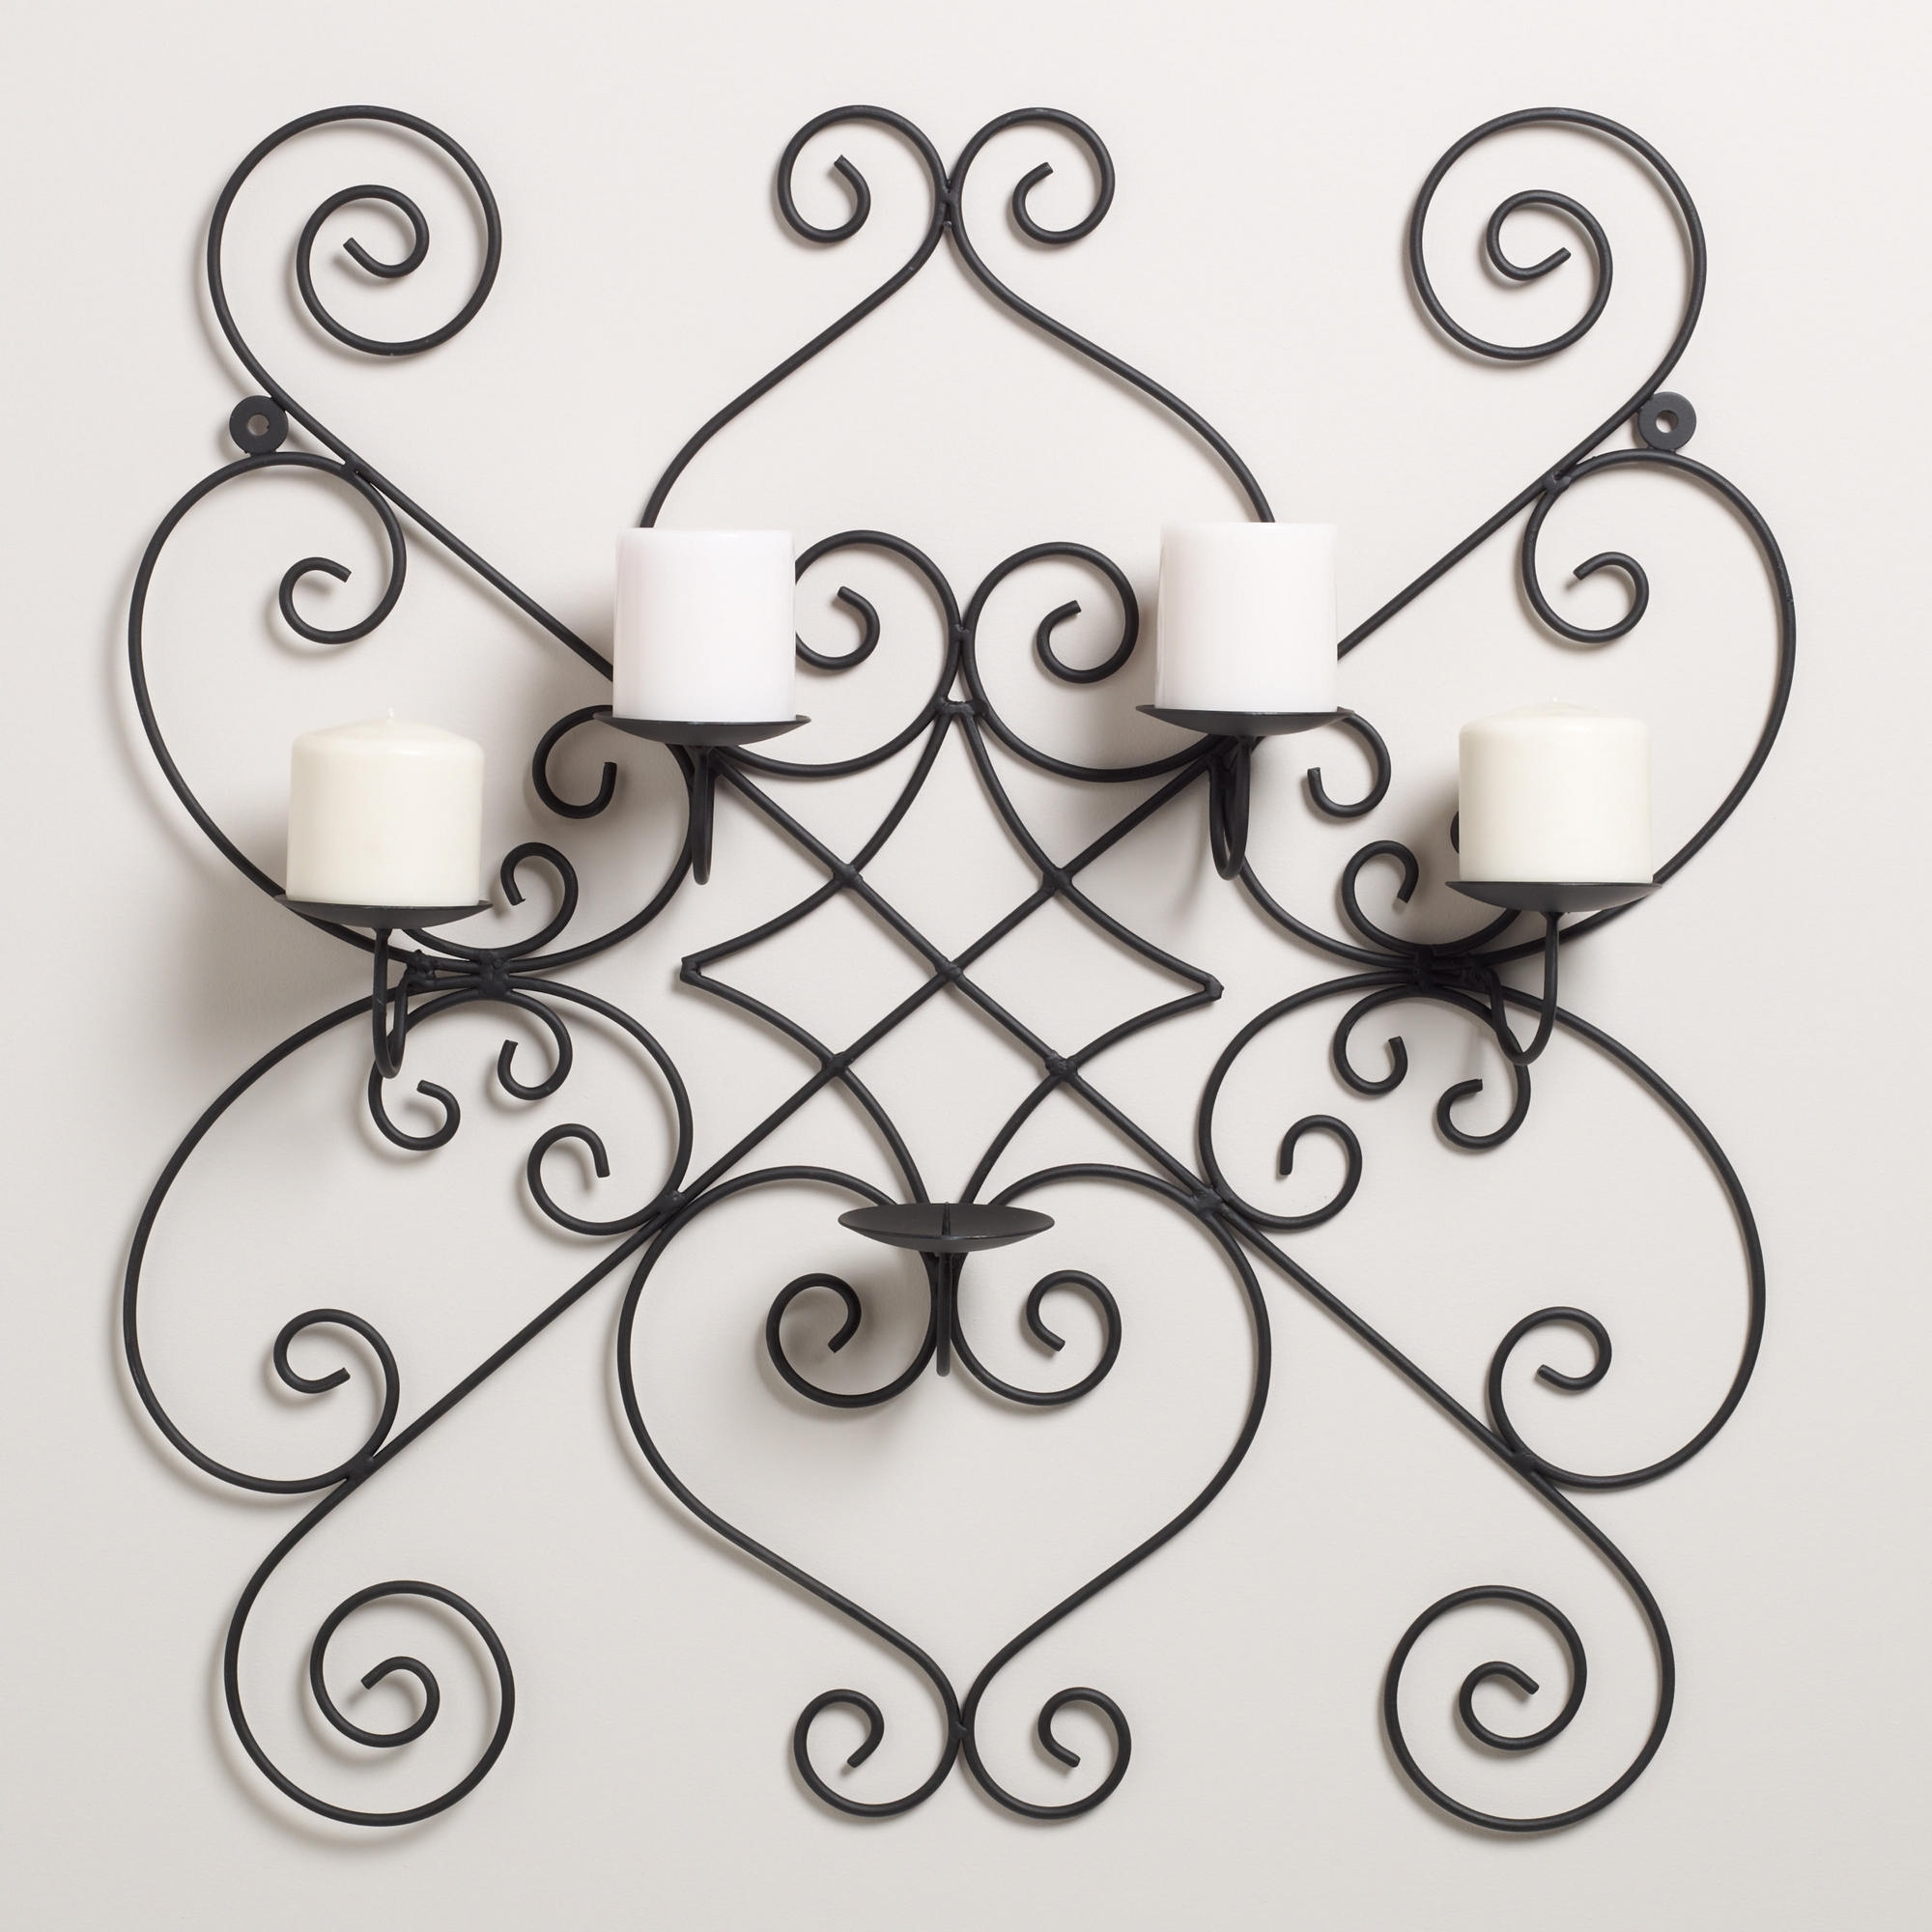 Benefit Of Wrought Iron Wall Decor — Charter Home Ideas Within Current Wrought Iron Wall Art (View 14 of 15)